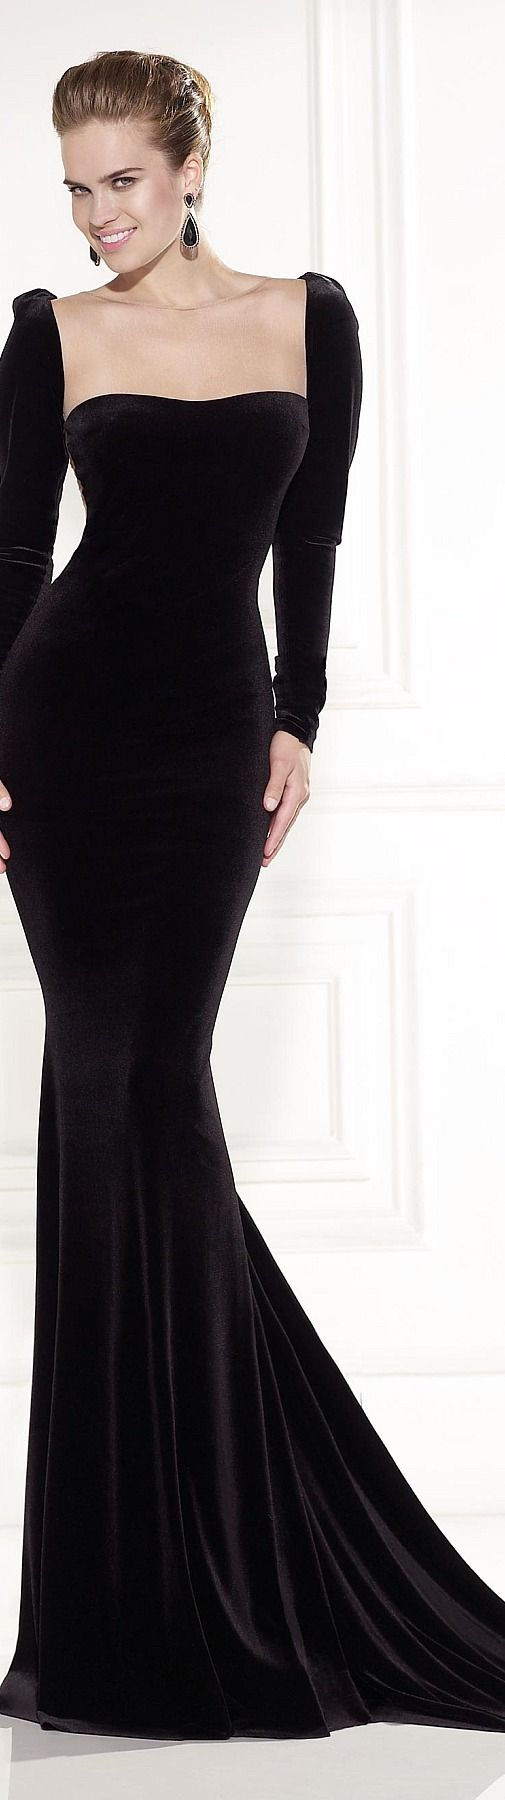 Very simple and to the point black long sleeve evening gown looks